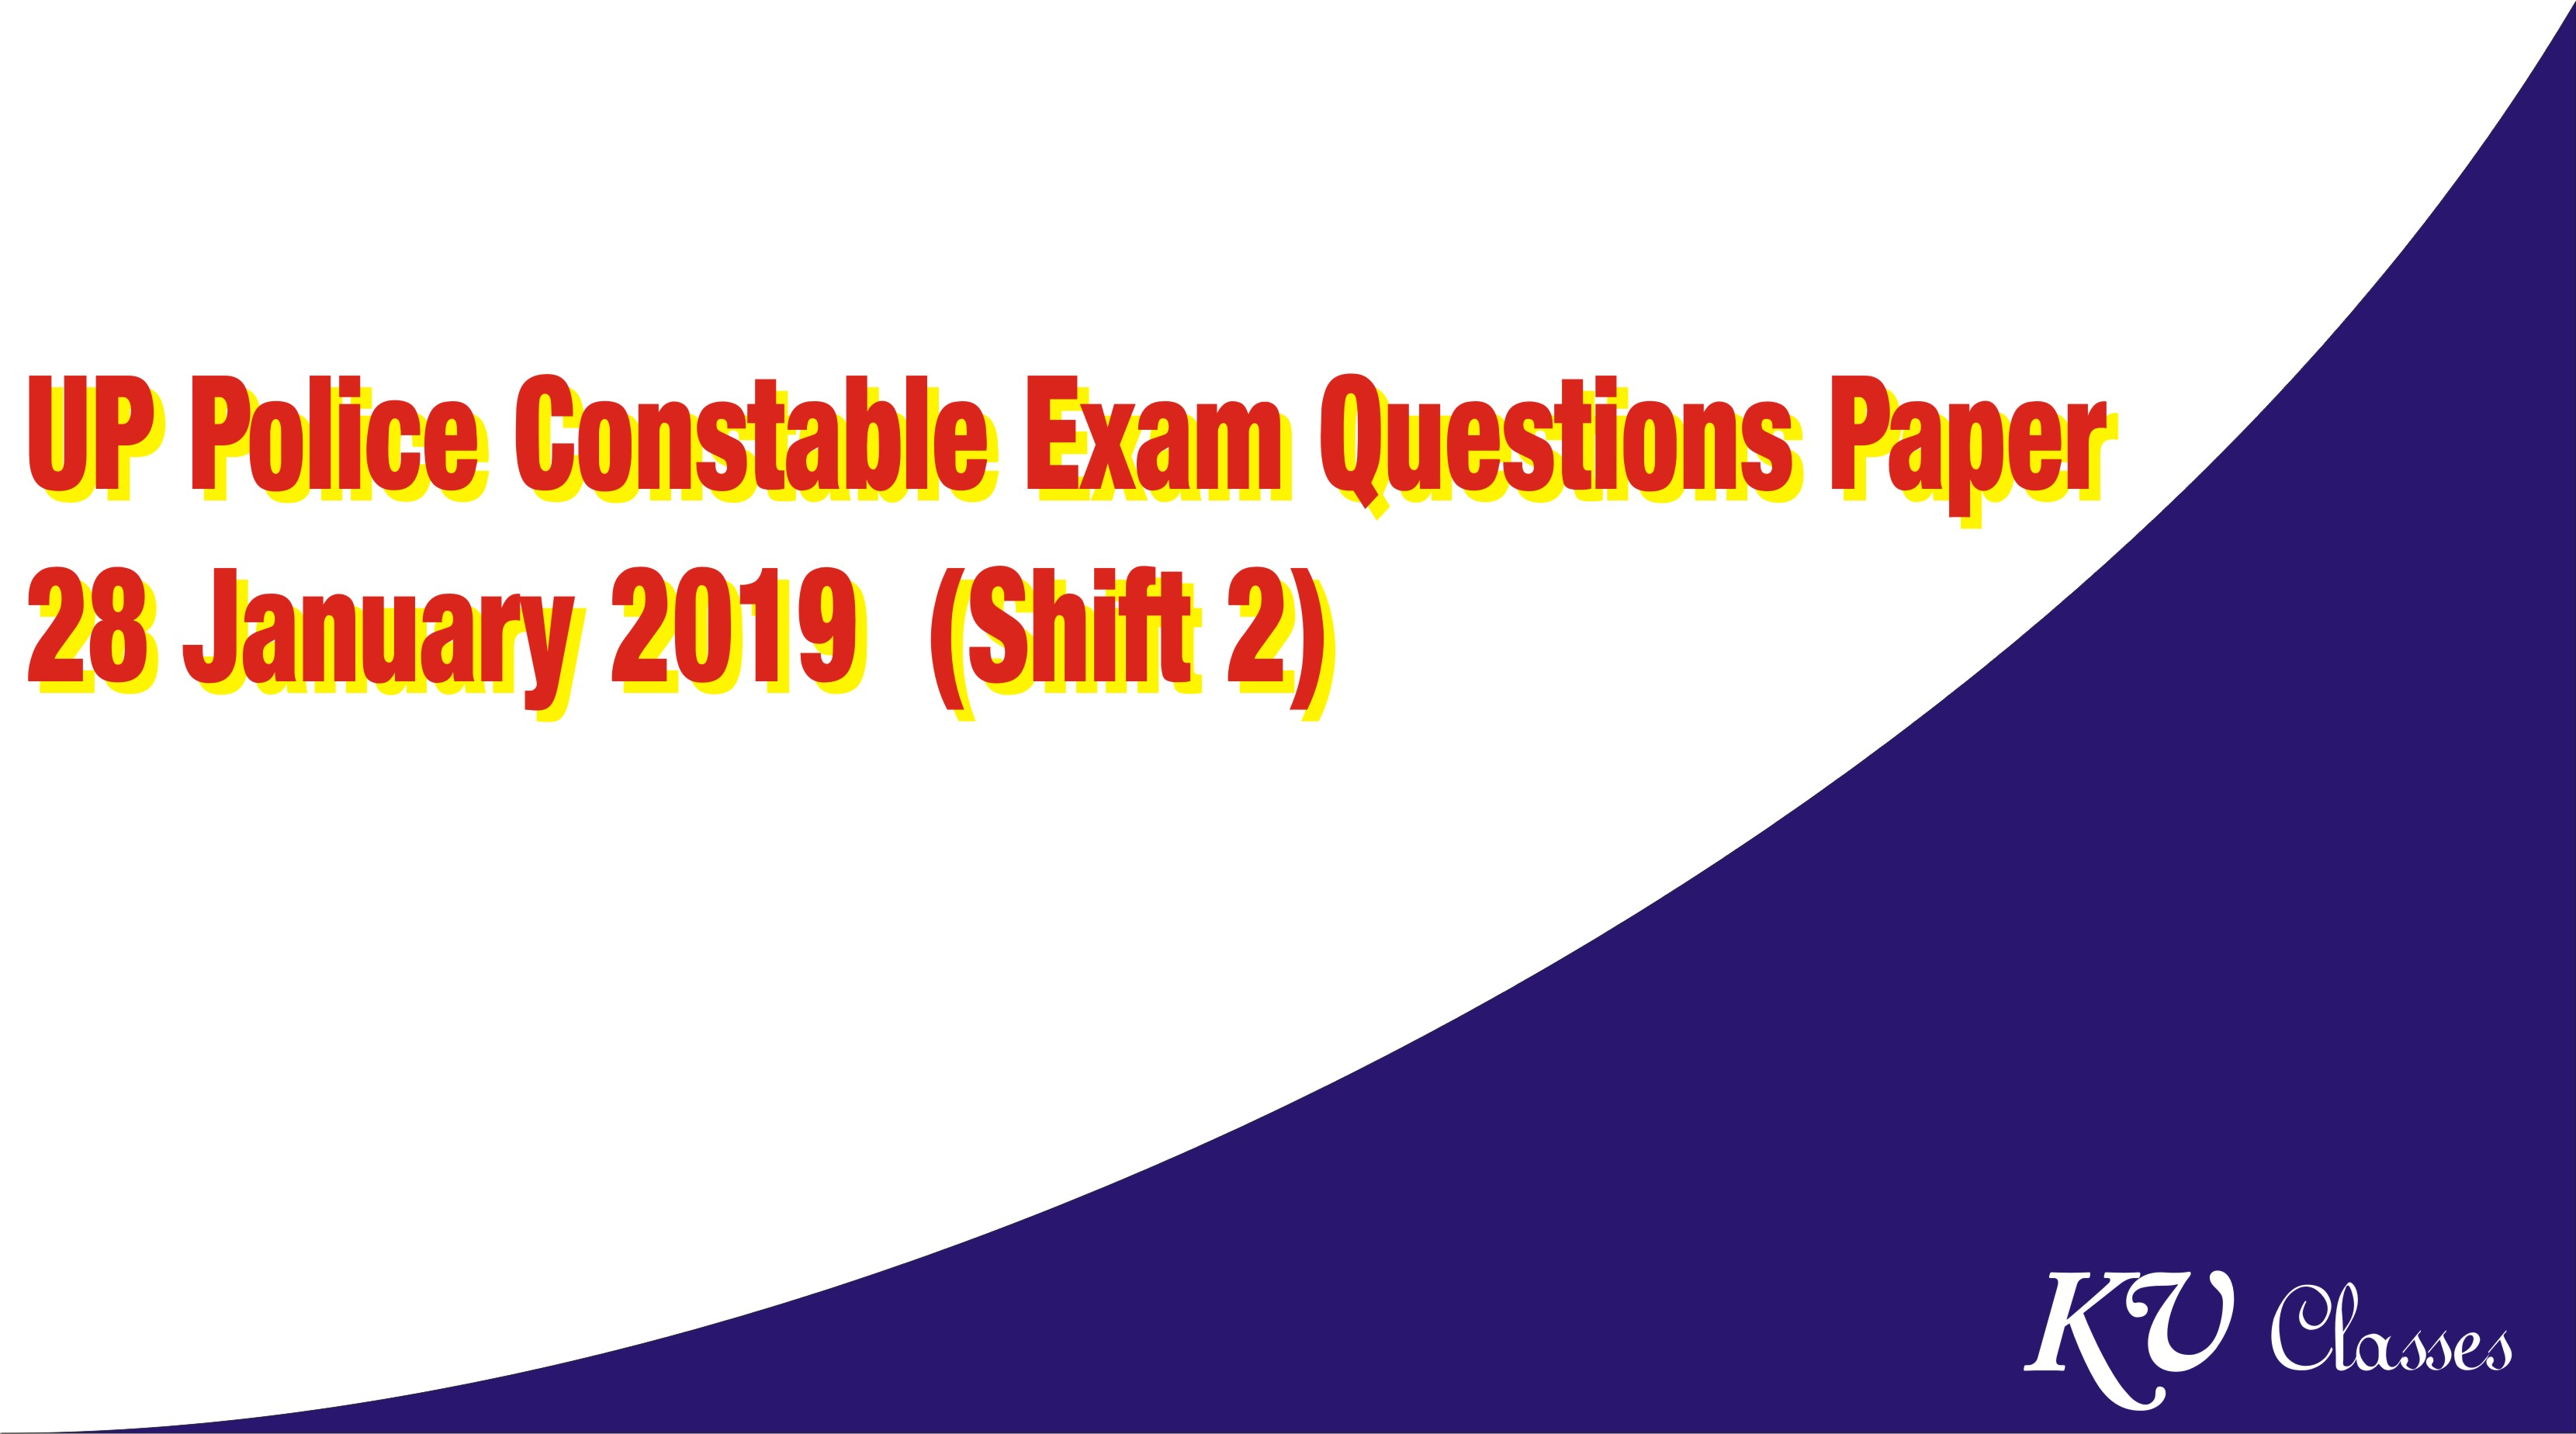 UP Police Constable 28 January 2019 Exam Questions Paper (Shift 2)